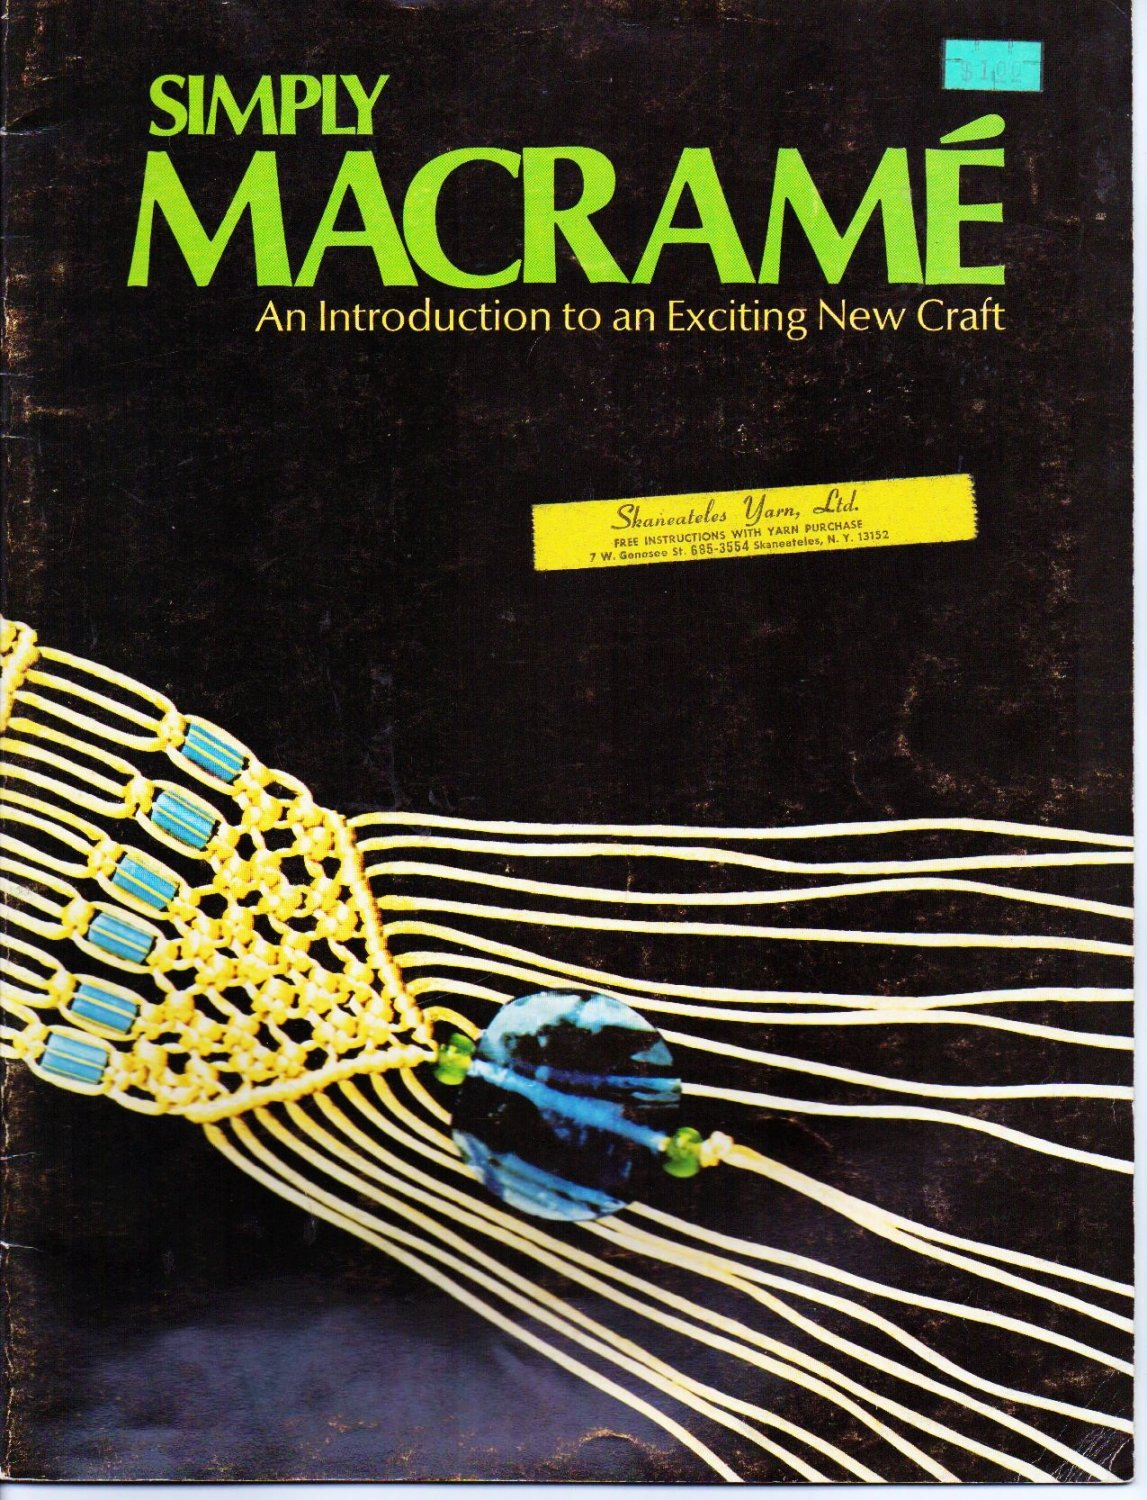 Simply Macrame An Introduction - Singleton and Weber